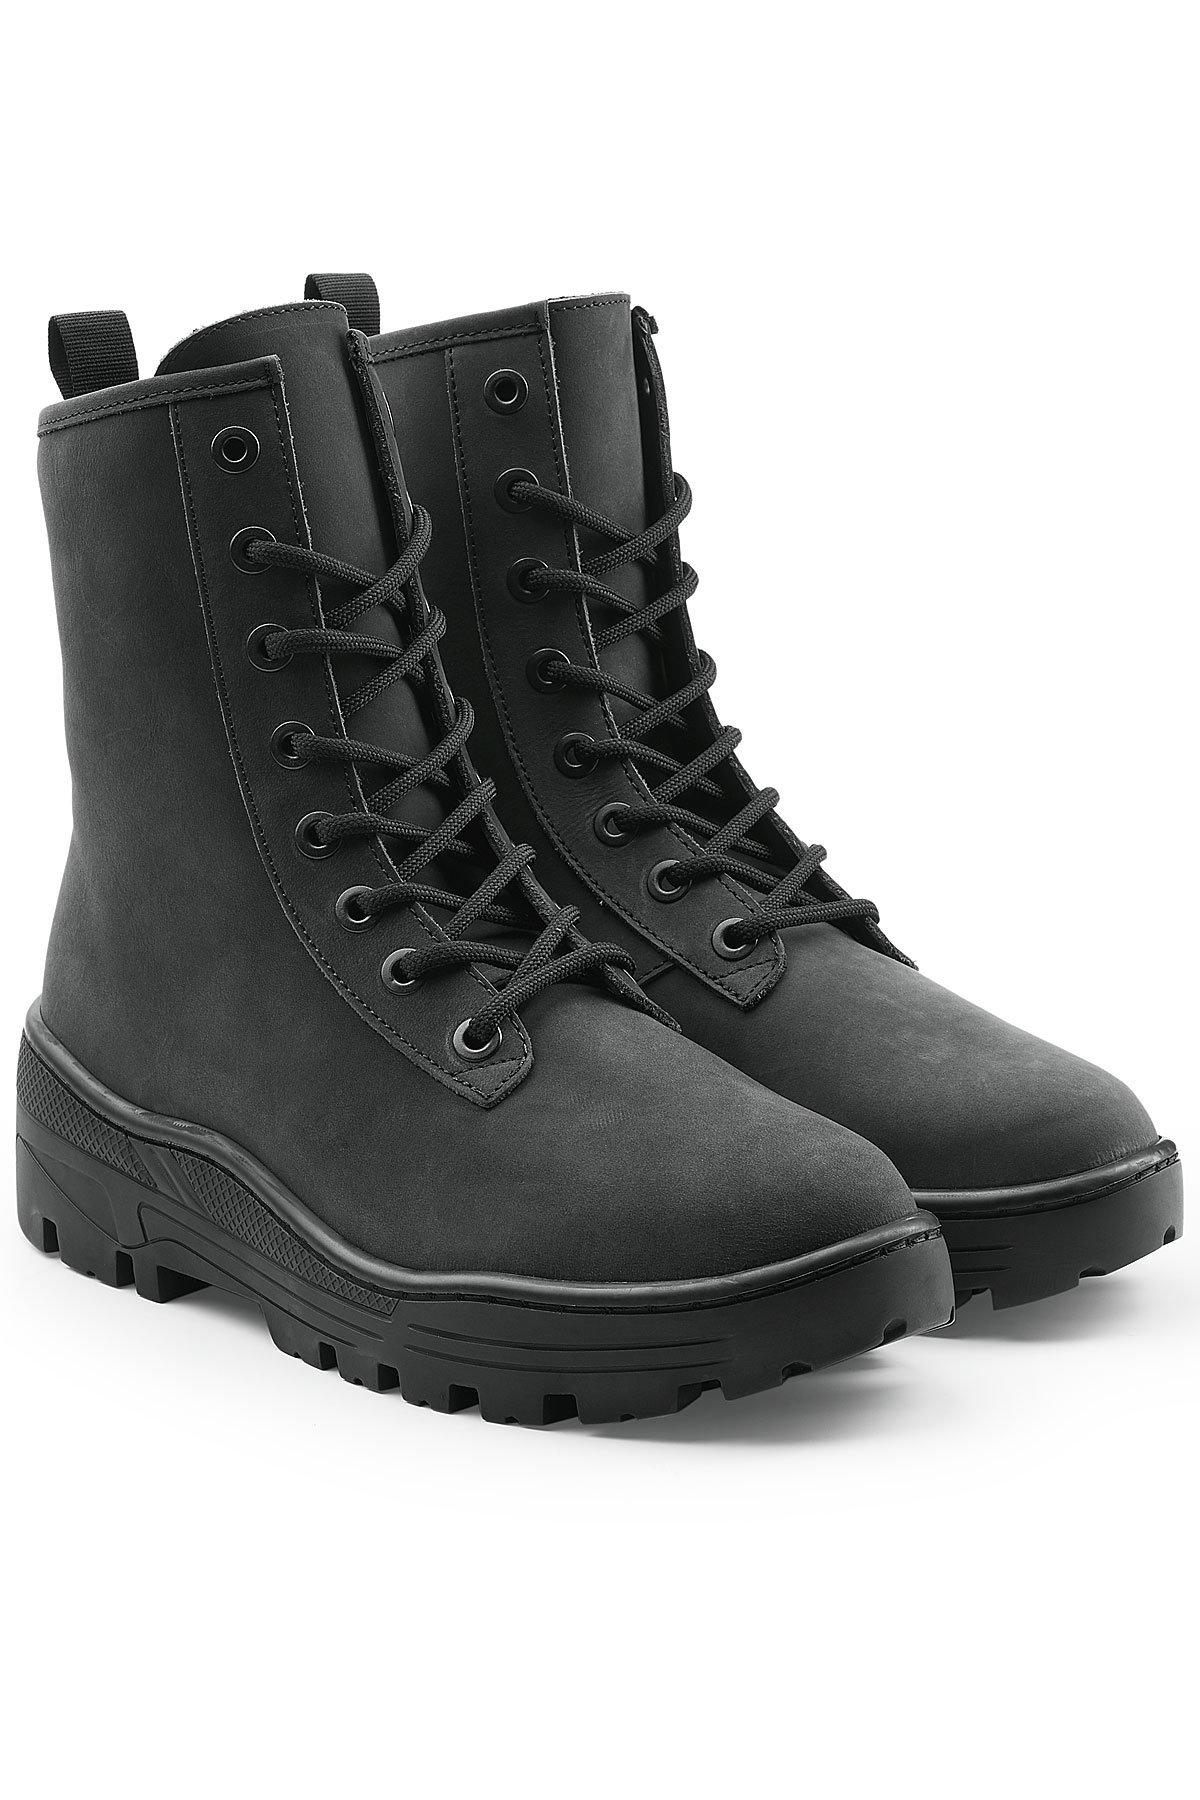 c59752ea91d1f Yeezy Nubuck Military Boots in Black for Men - Lyst